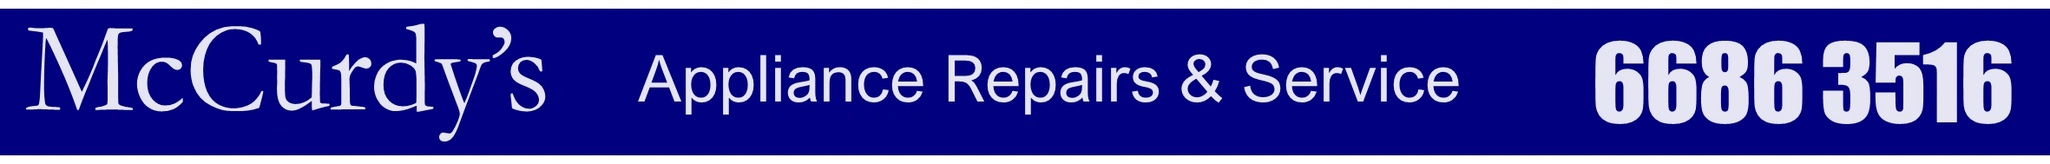 McCurdy's Appliance Repairs & Service